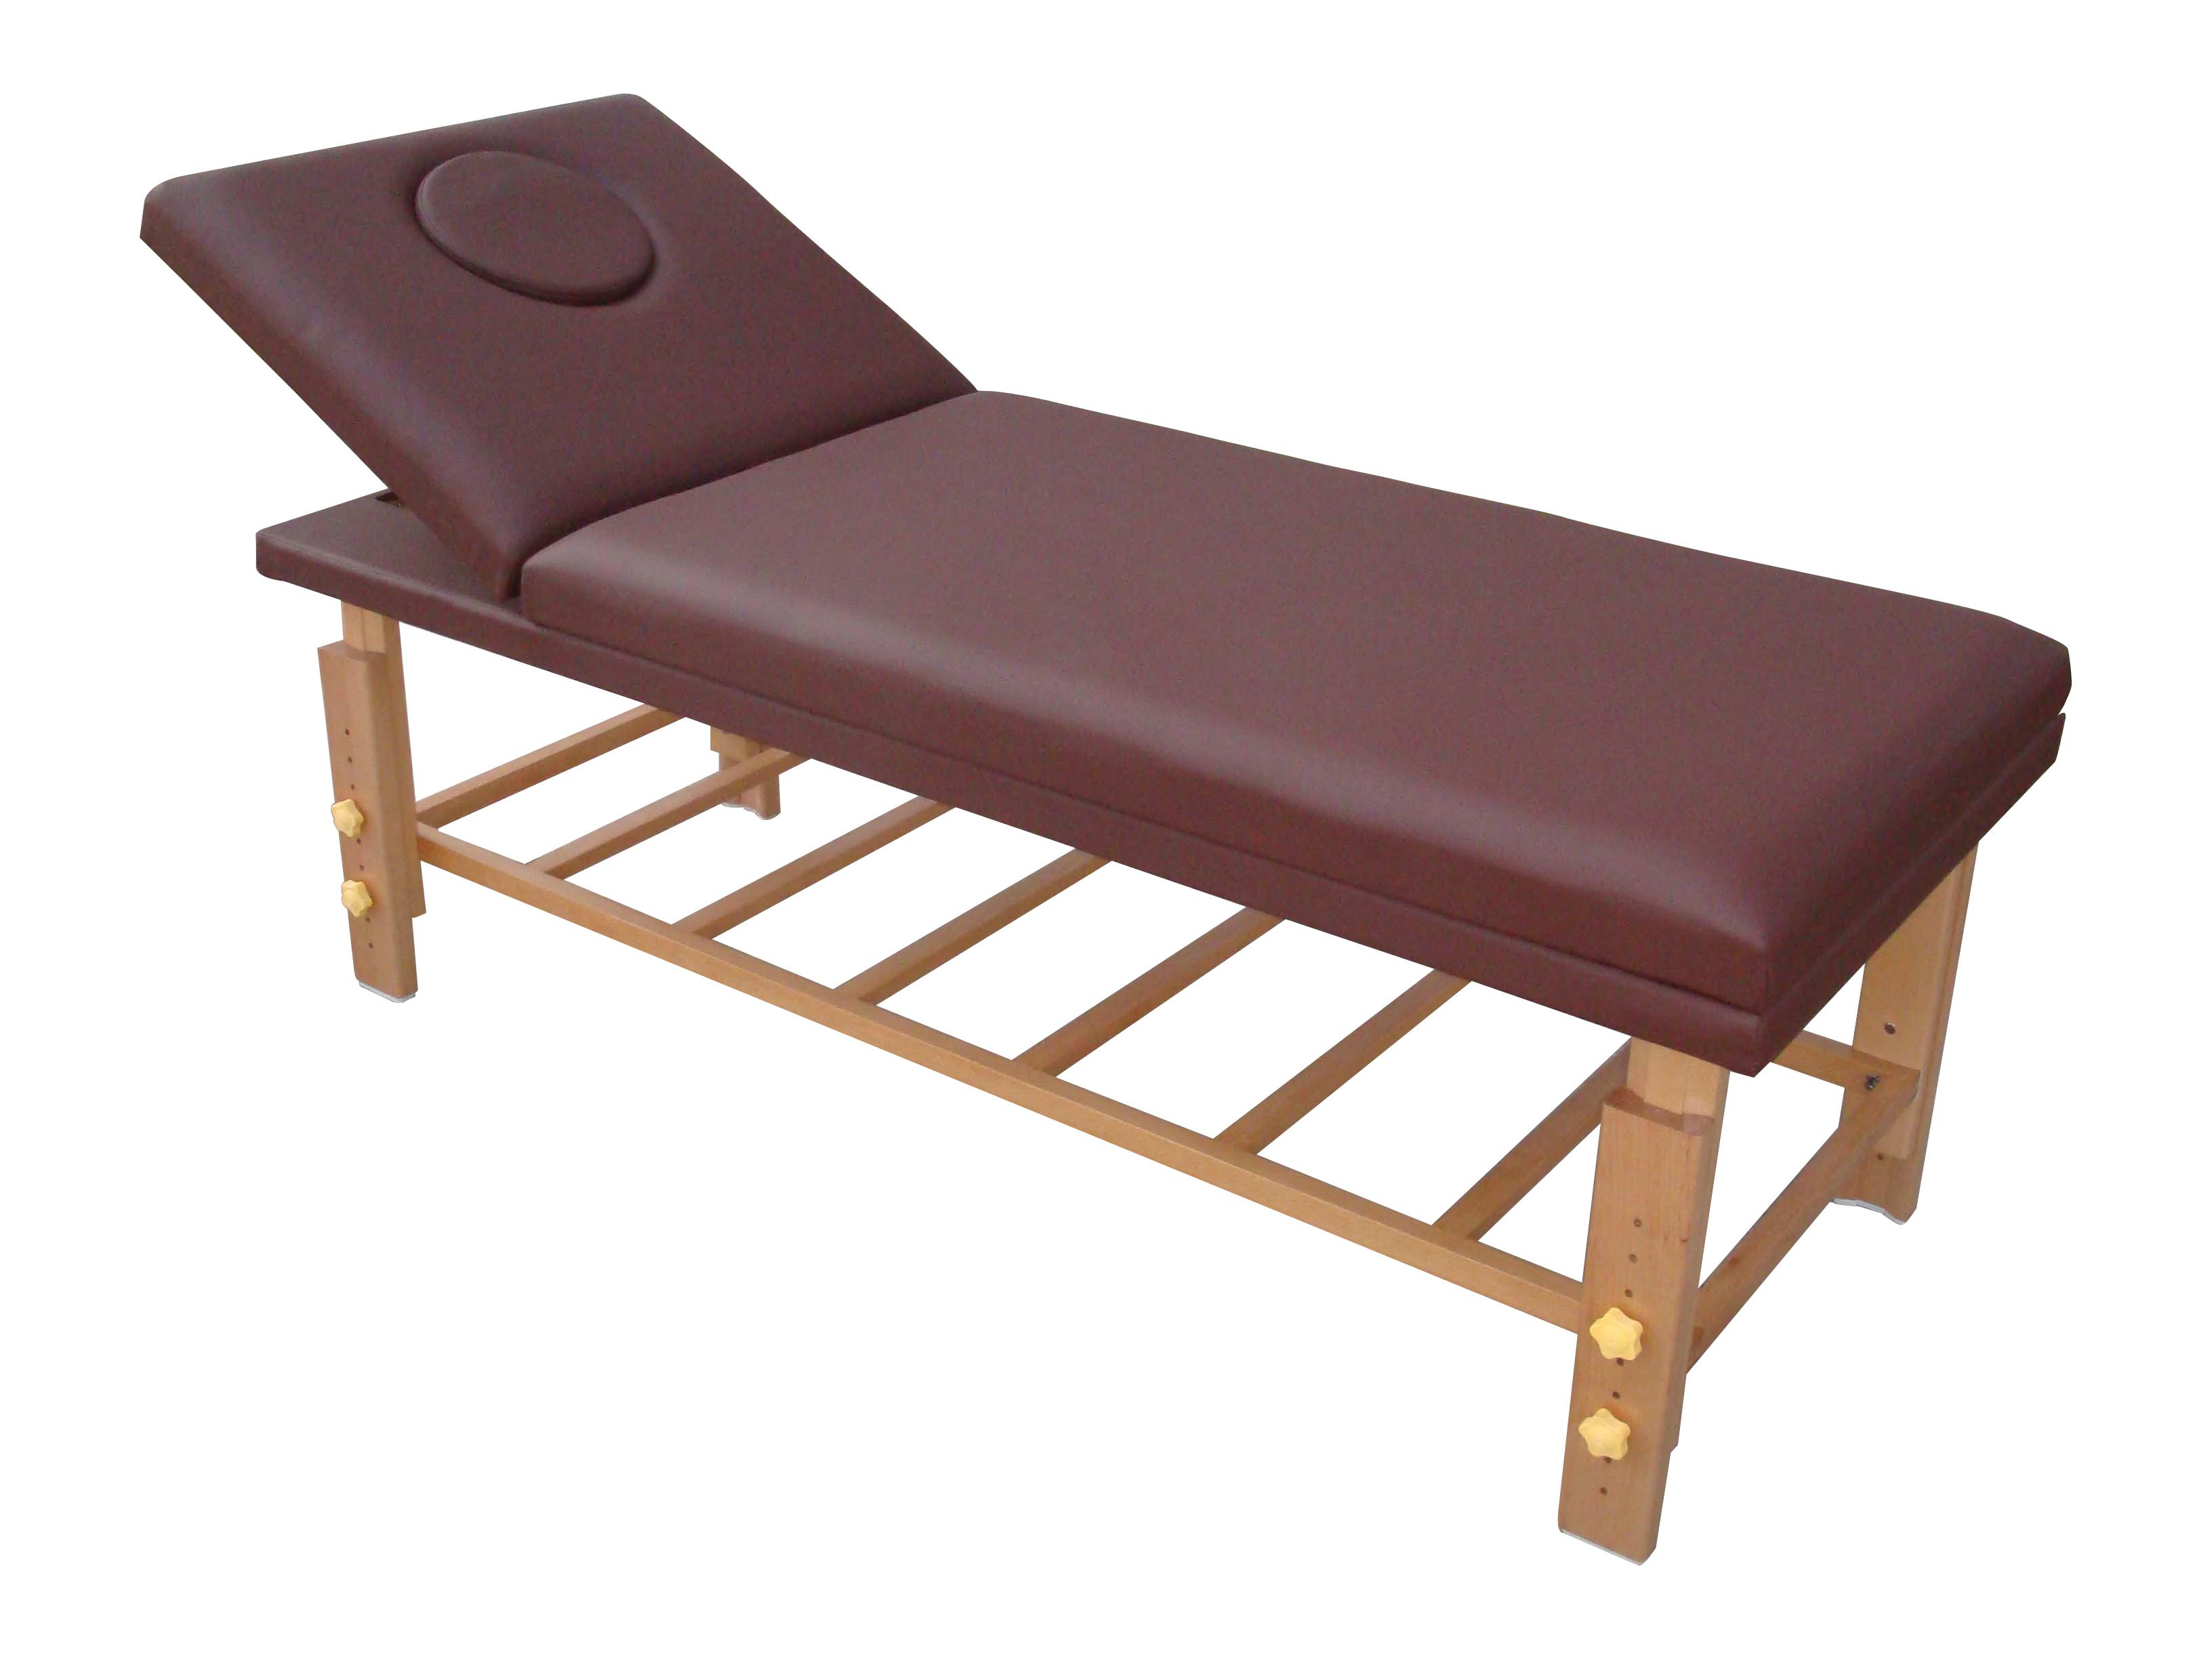 product ease table sale health real care massage detail for sex